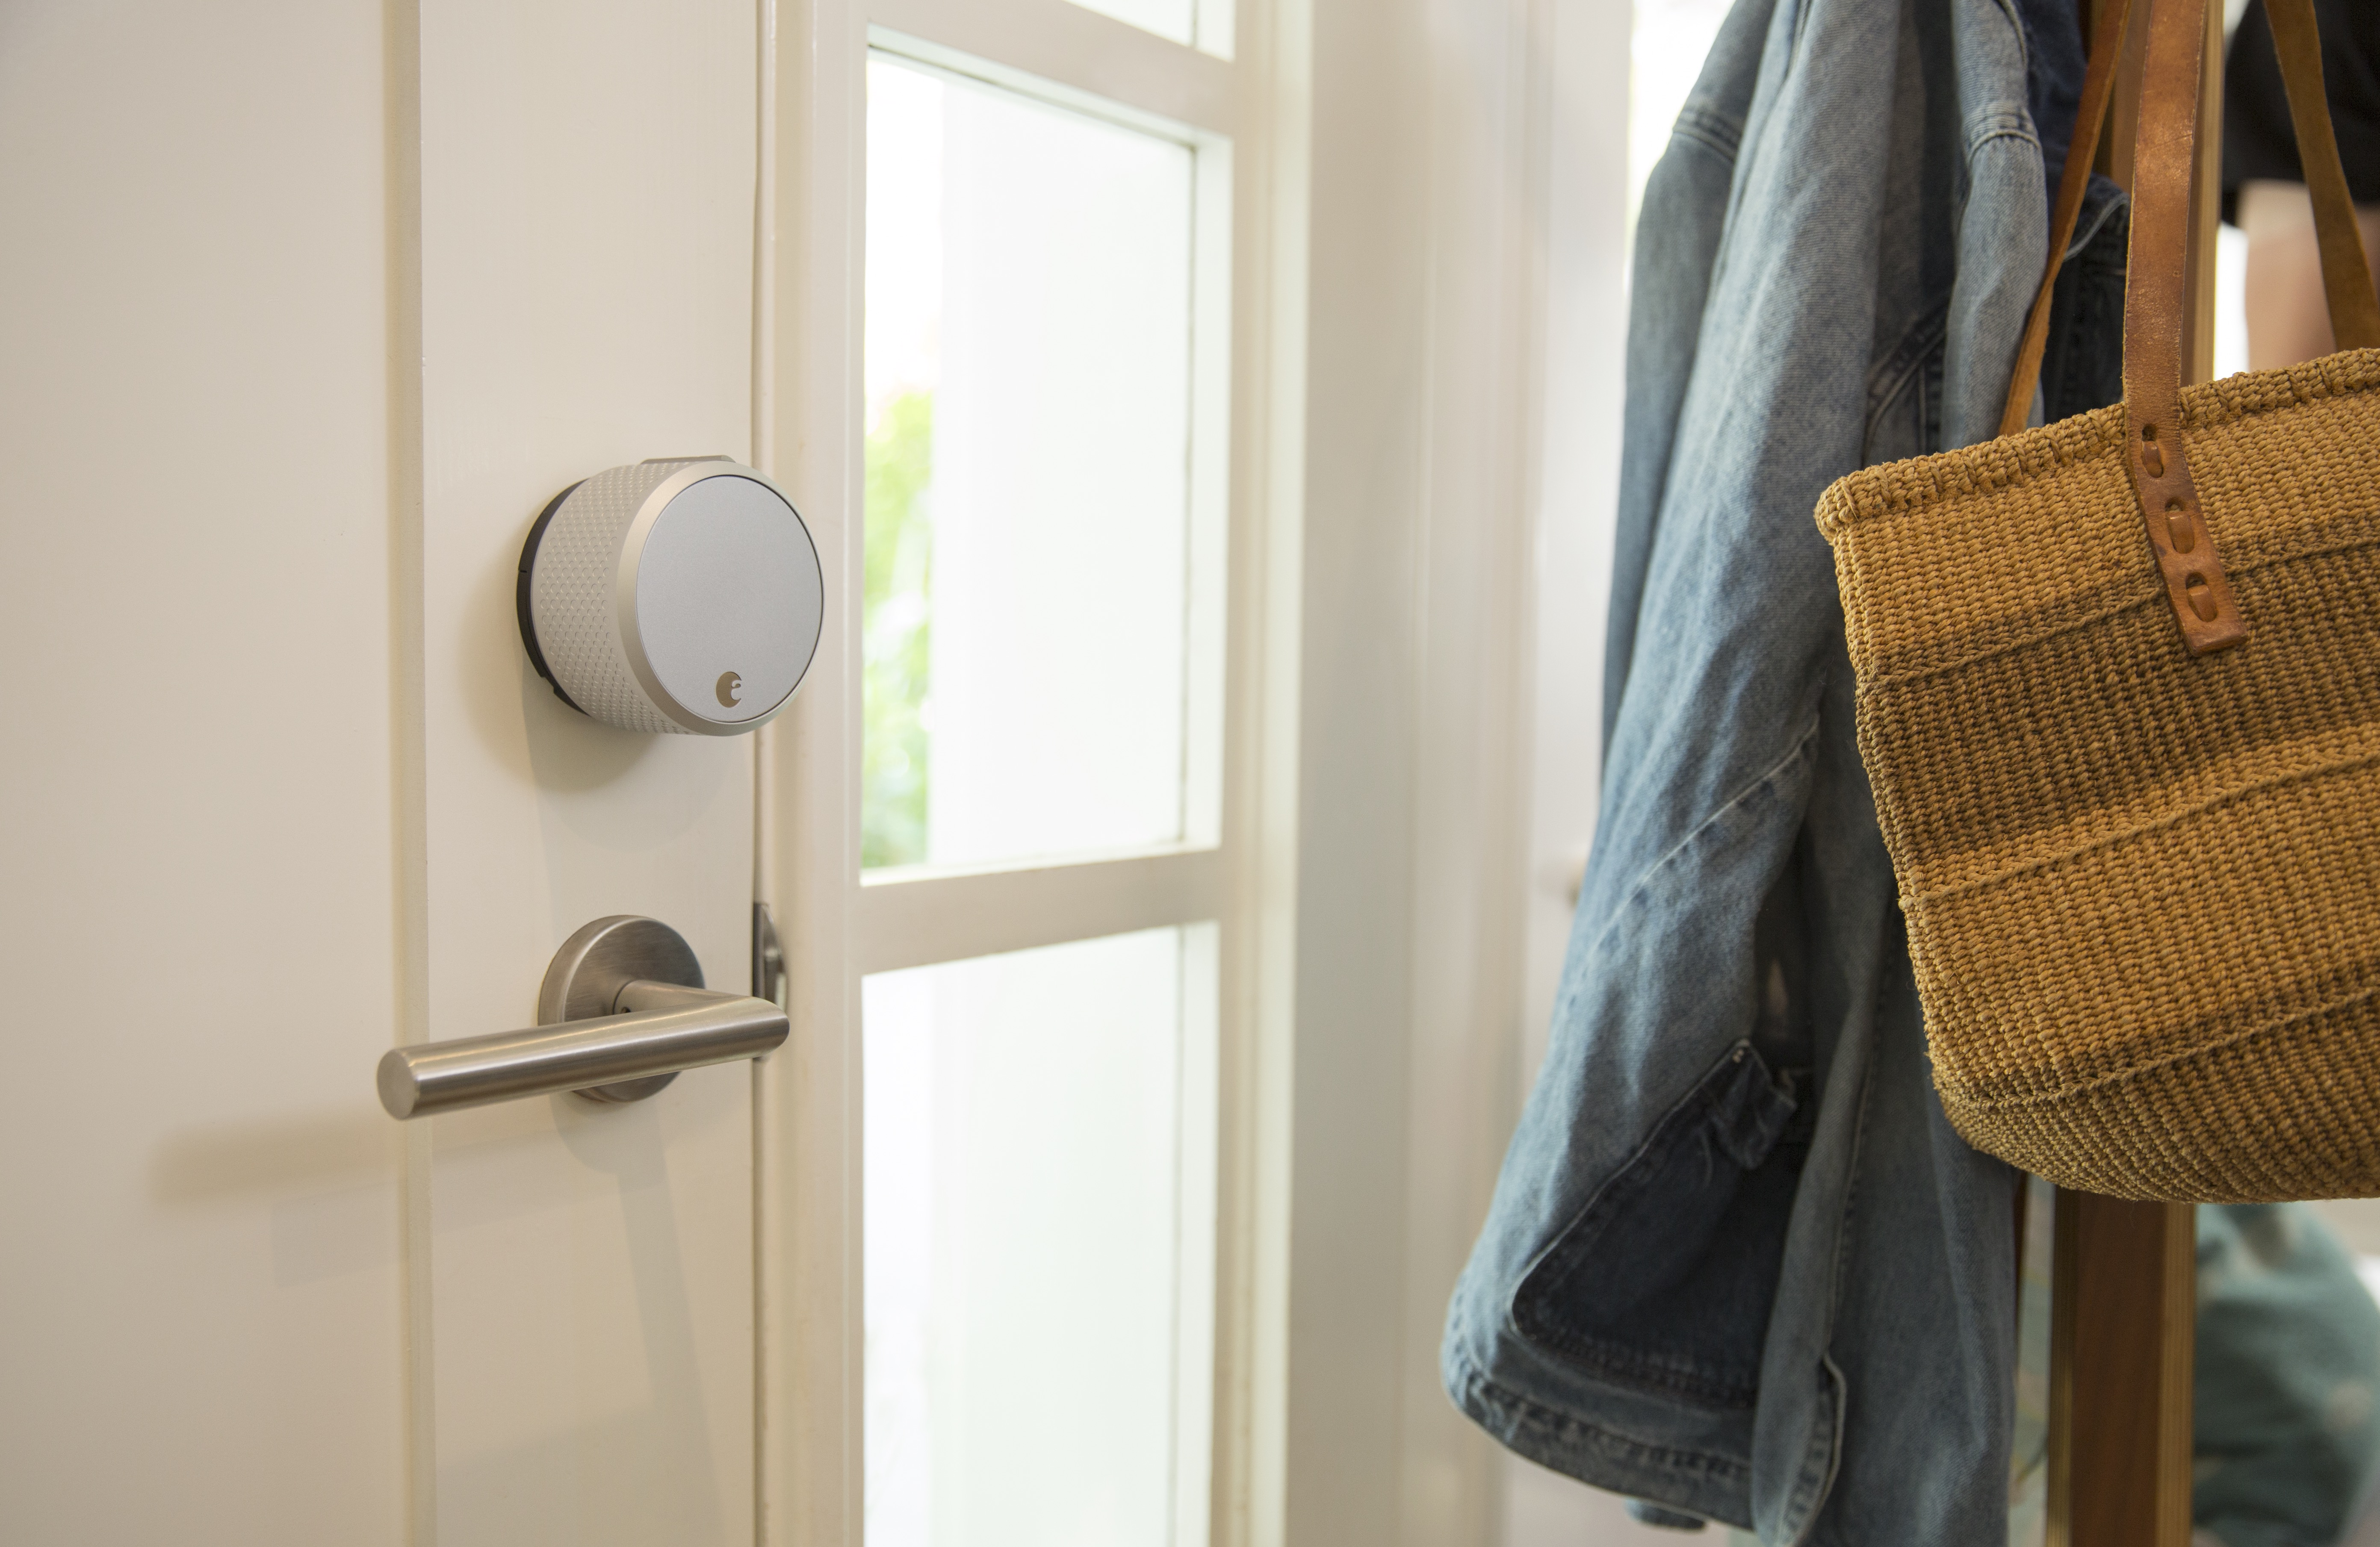 Smart locks 101: pros and cons to know